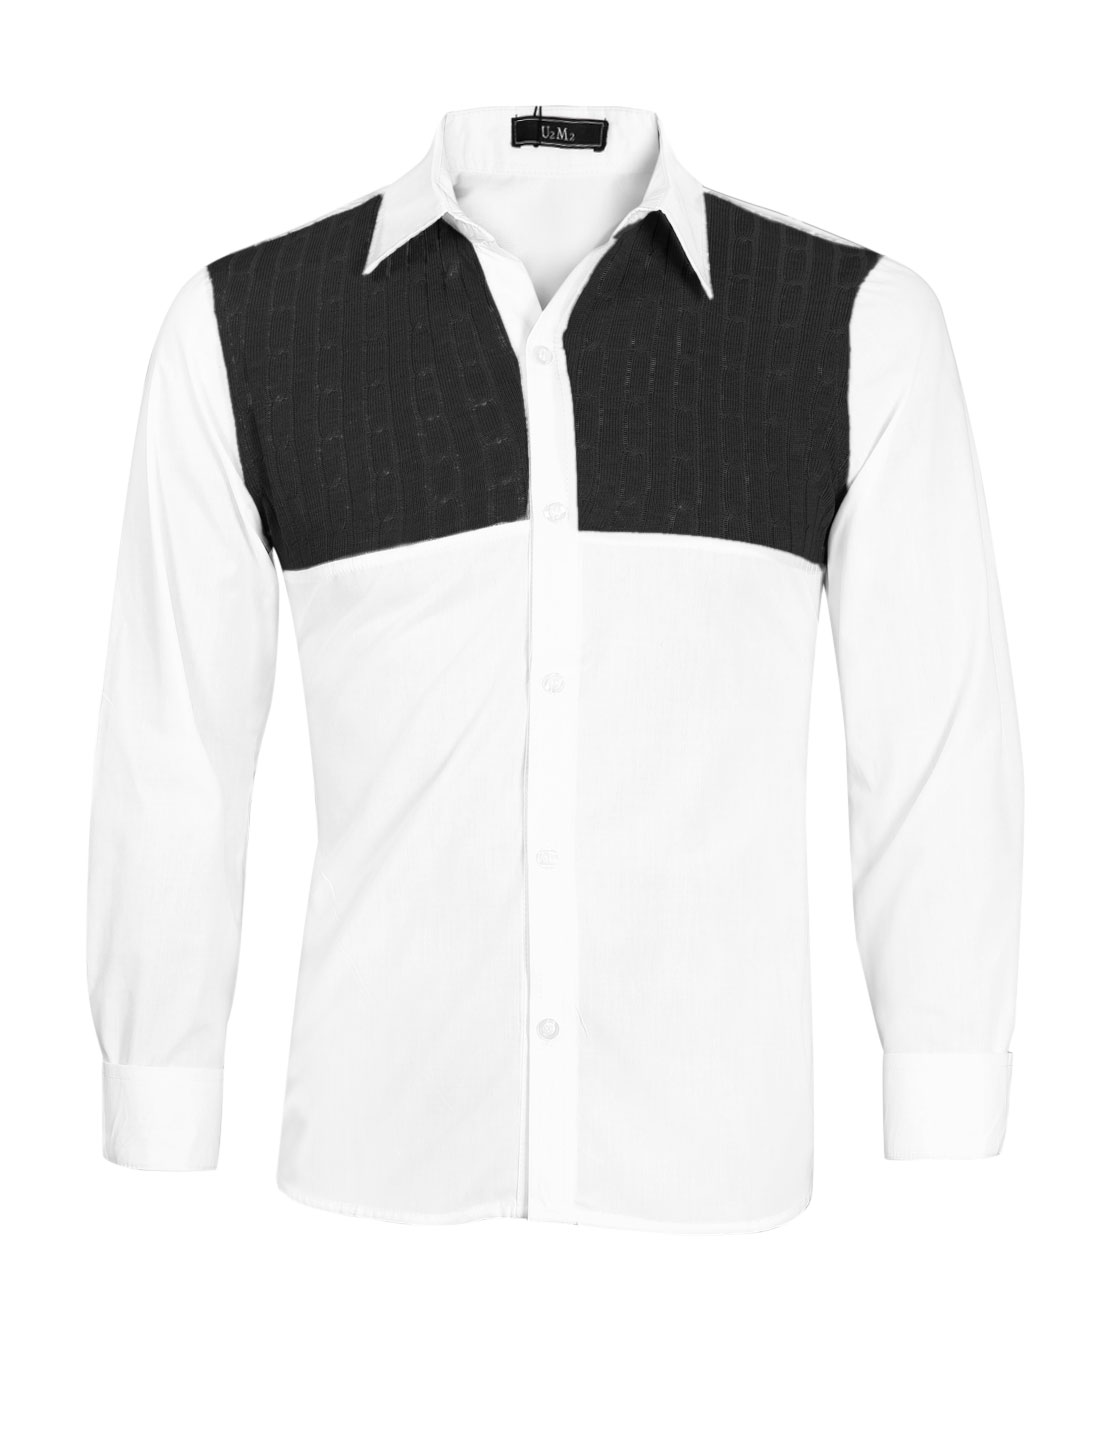 Men Button Up Knitted-Patched Colorblock Shirt White Black M